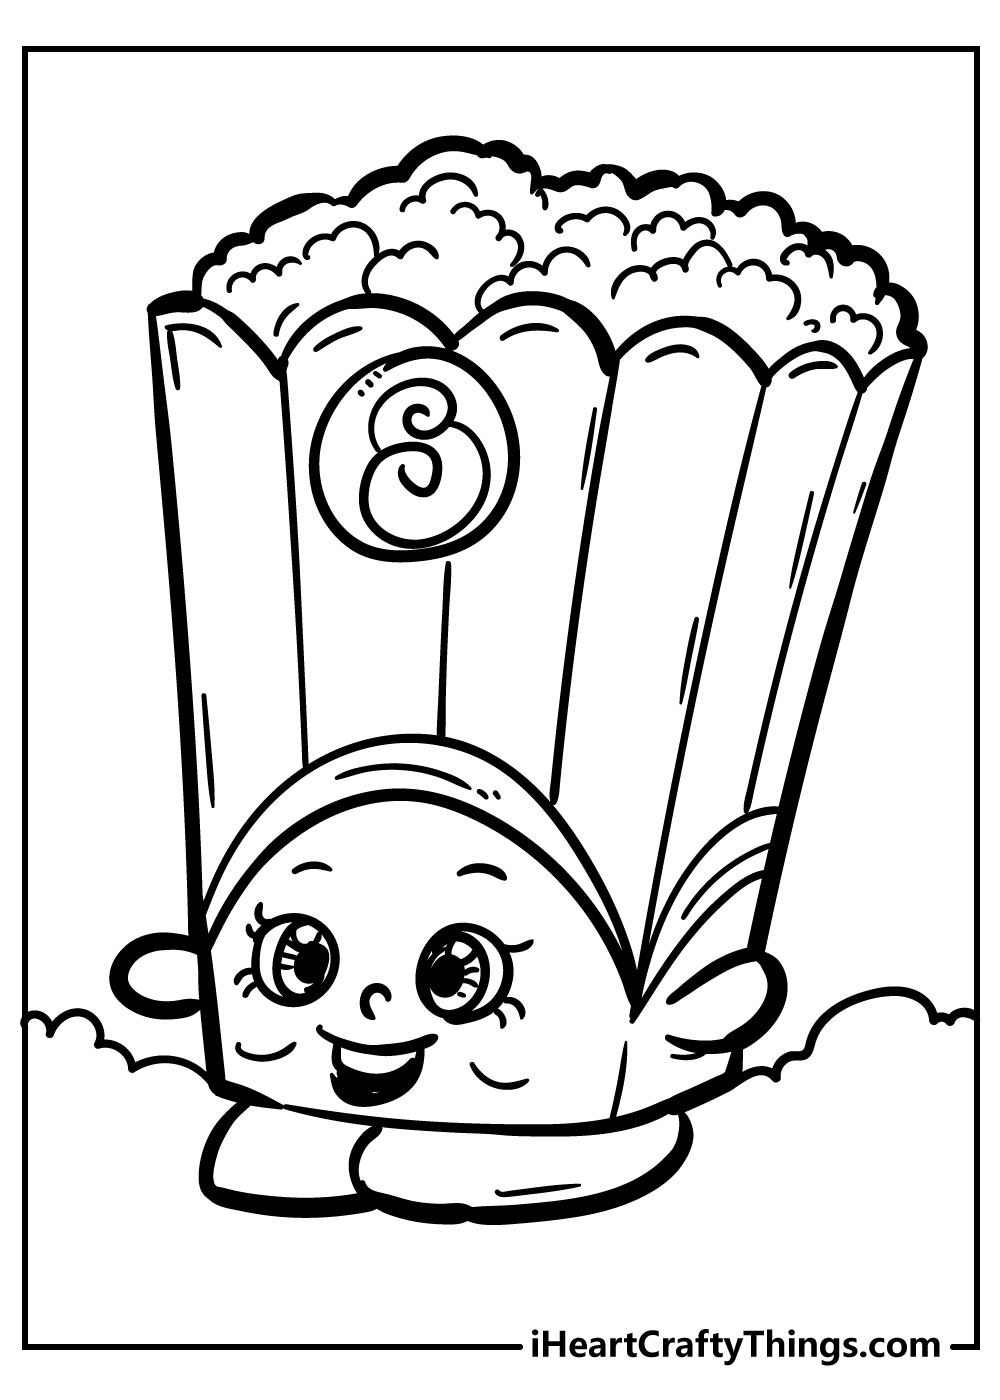 poppy corn shopkins coloring pages free printable for kids